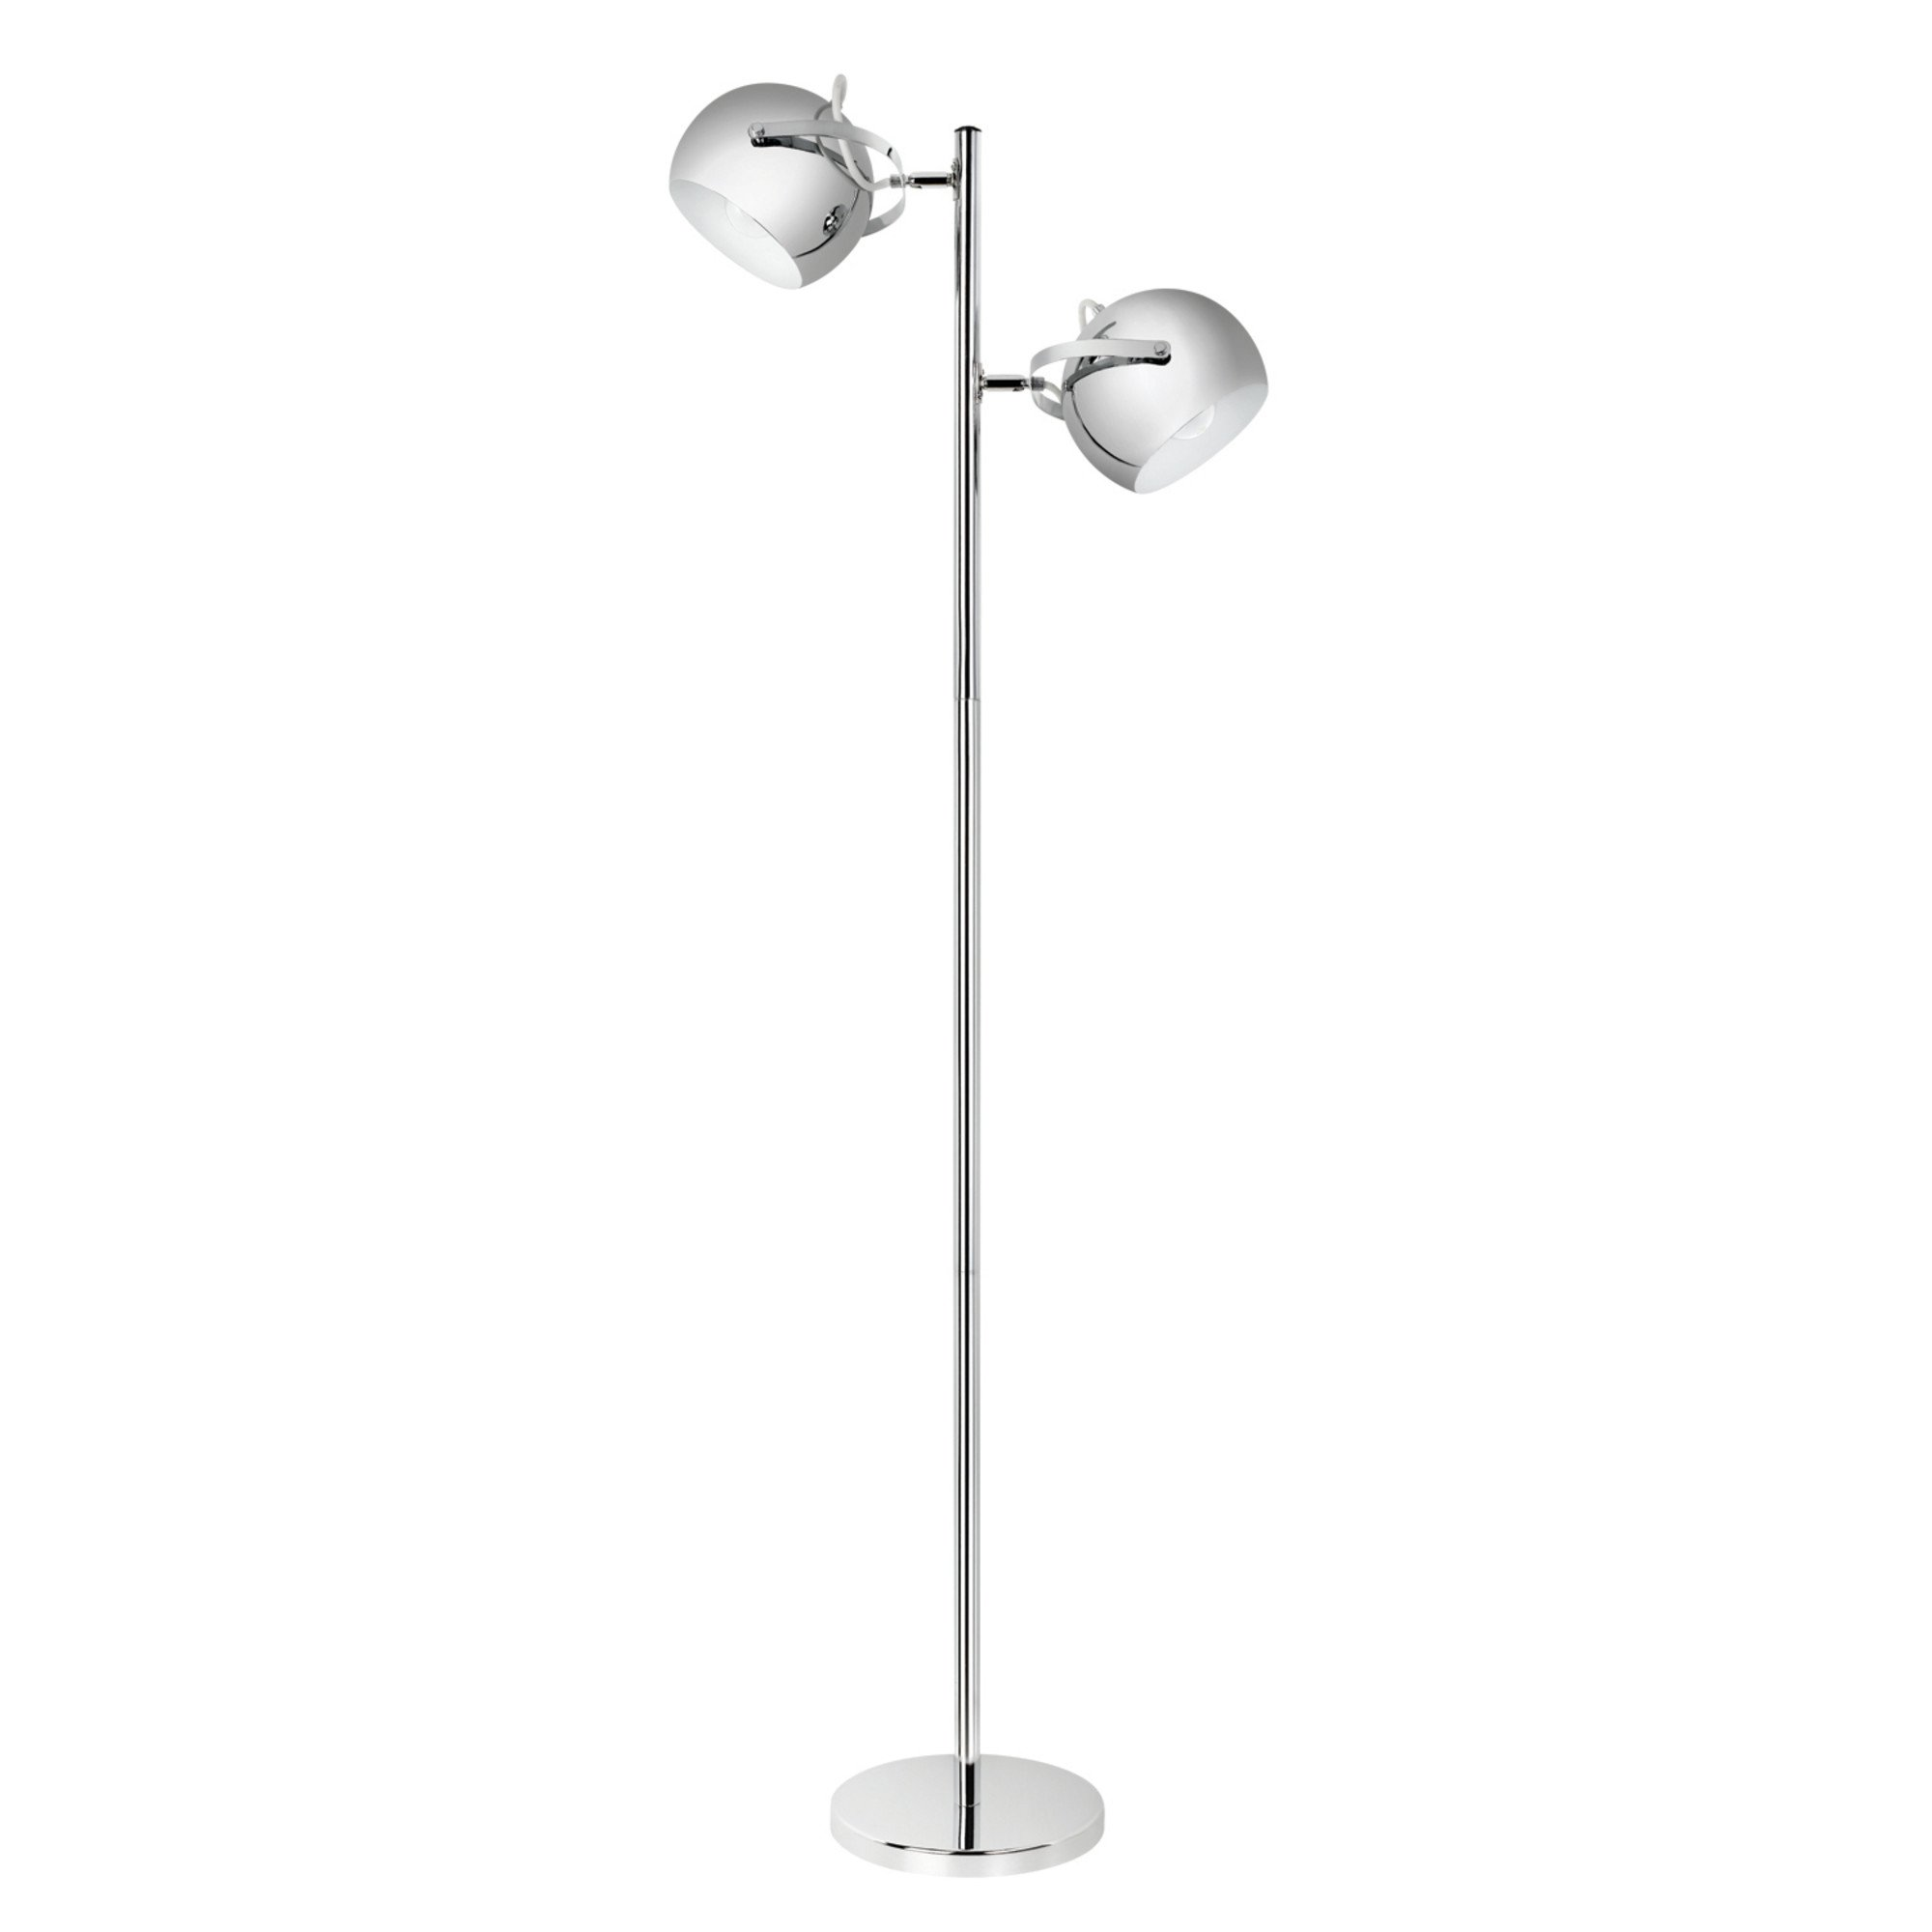 Globe Electric Miles 2-Light Adjustable Head Floor Lamp, On/Off Foot Switch, Chrome Finish, 12807 by Globe Electric (Image #1)